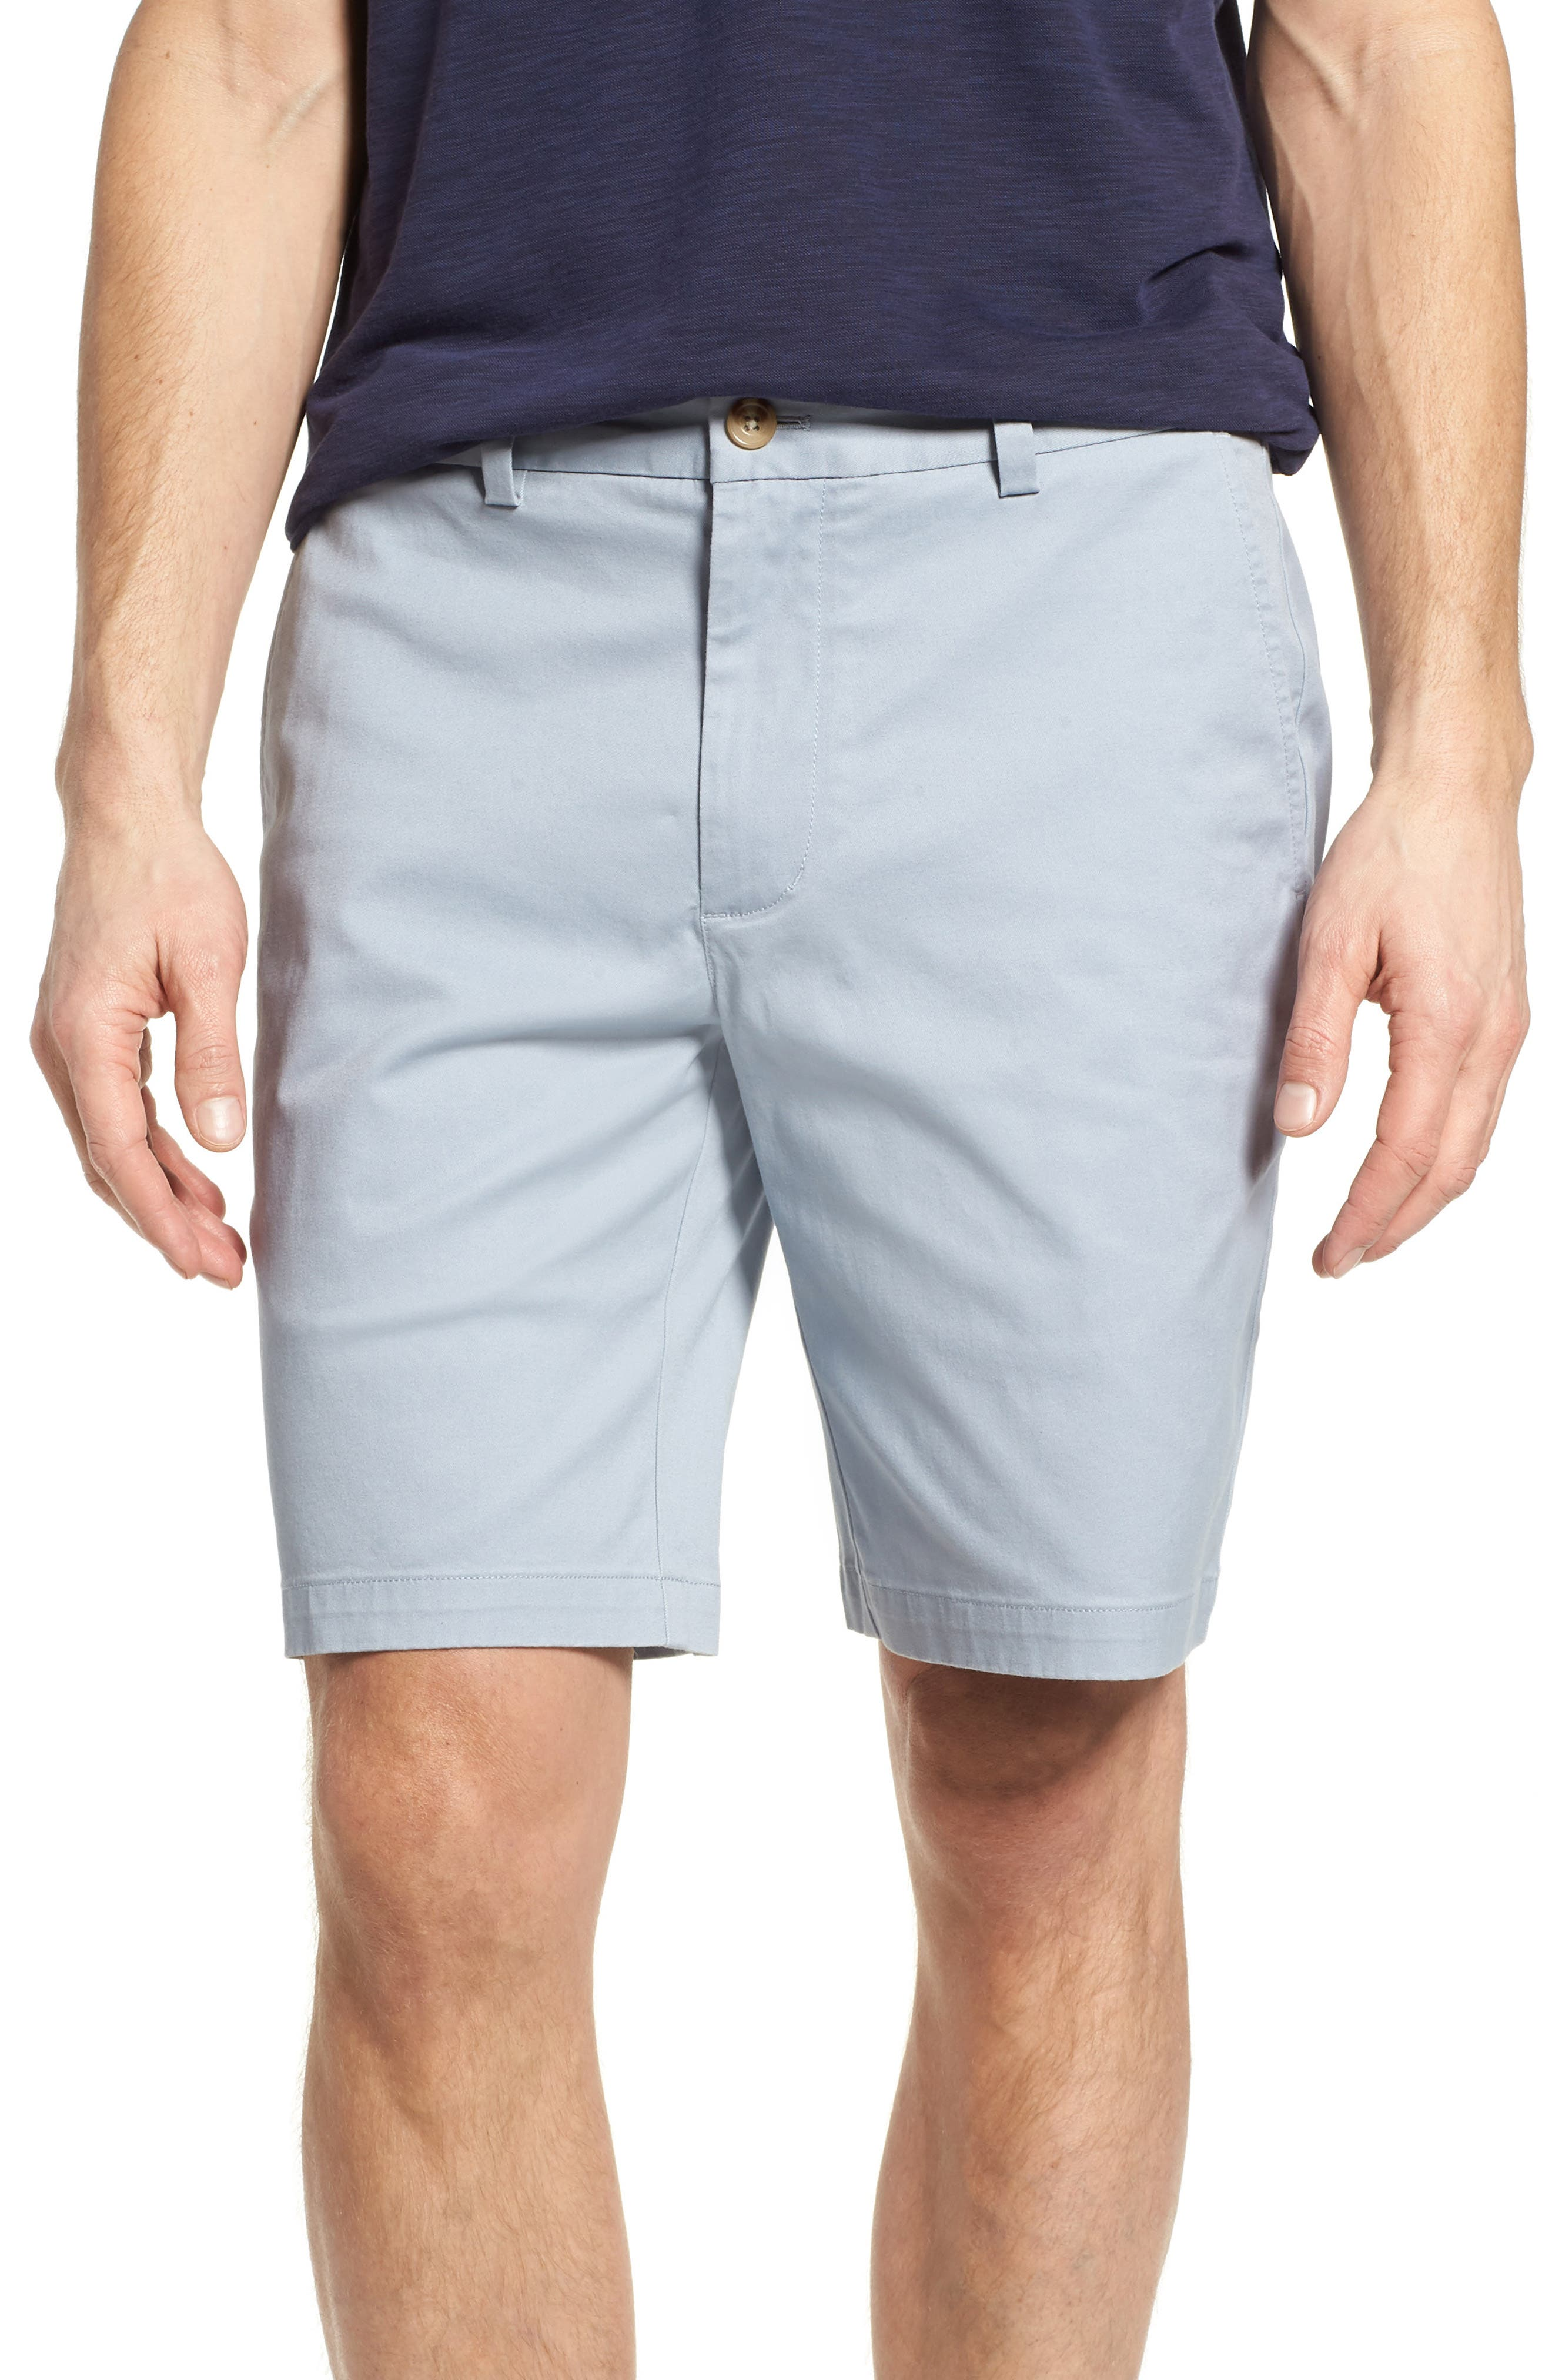 9 Inch Stretch Breaker Shorts,                         Main,                         color, 034